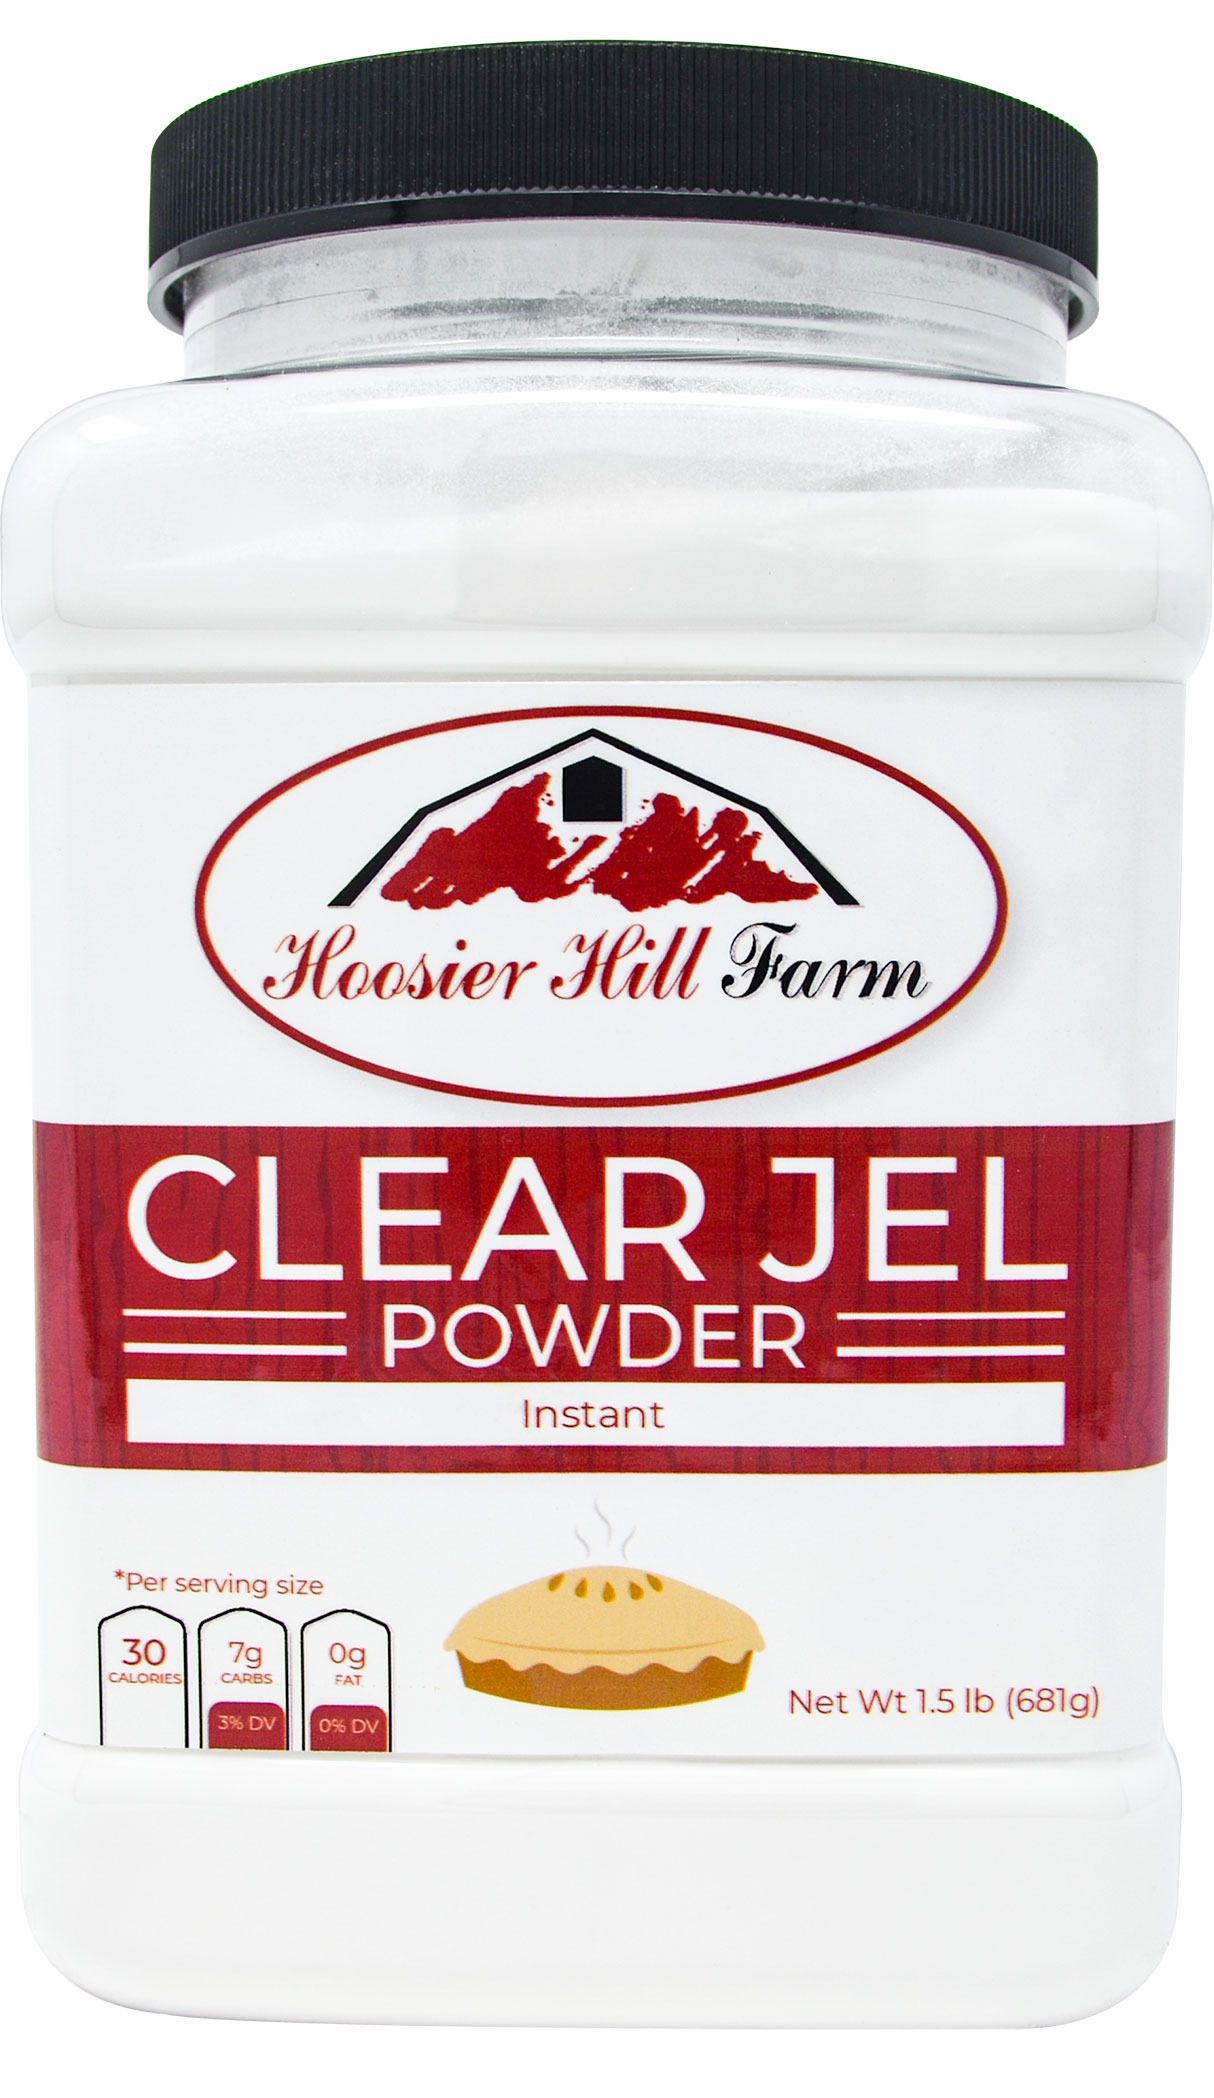 Hoosier Hill Farm Instant Clear Jel, 1.5 Lbs.